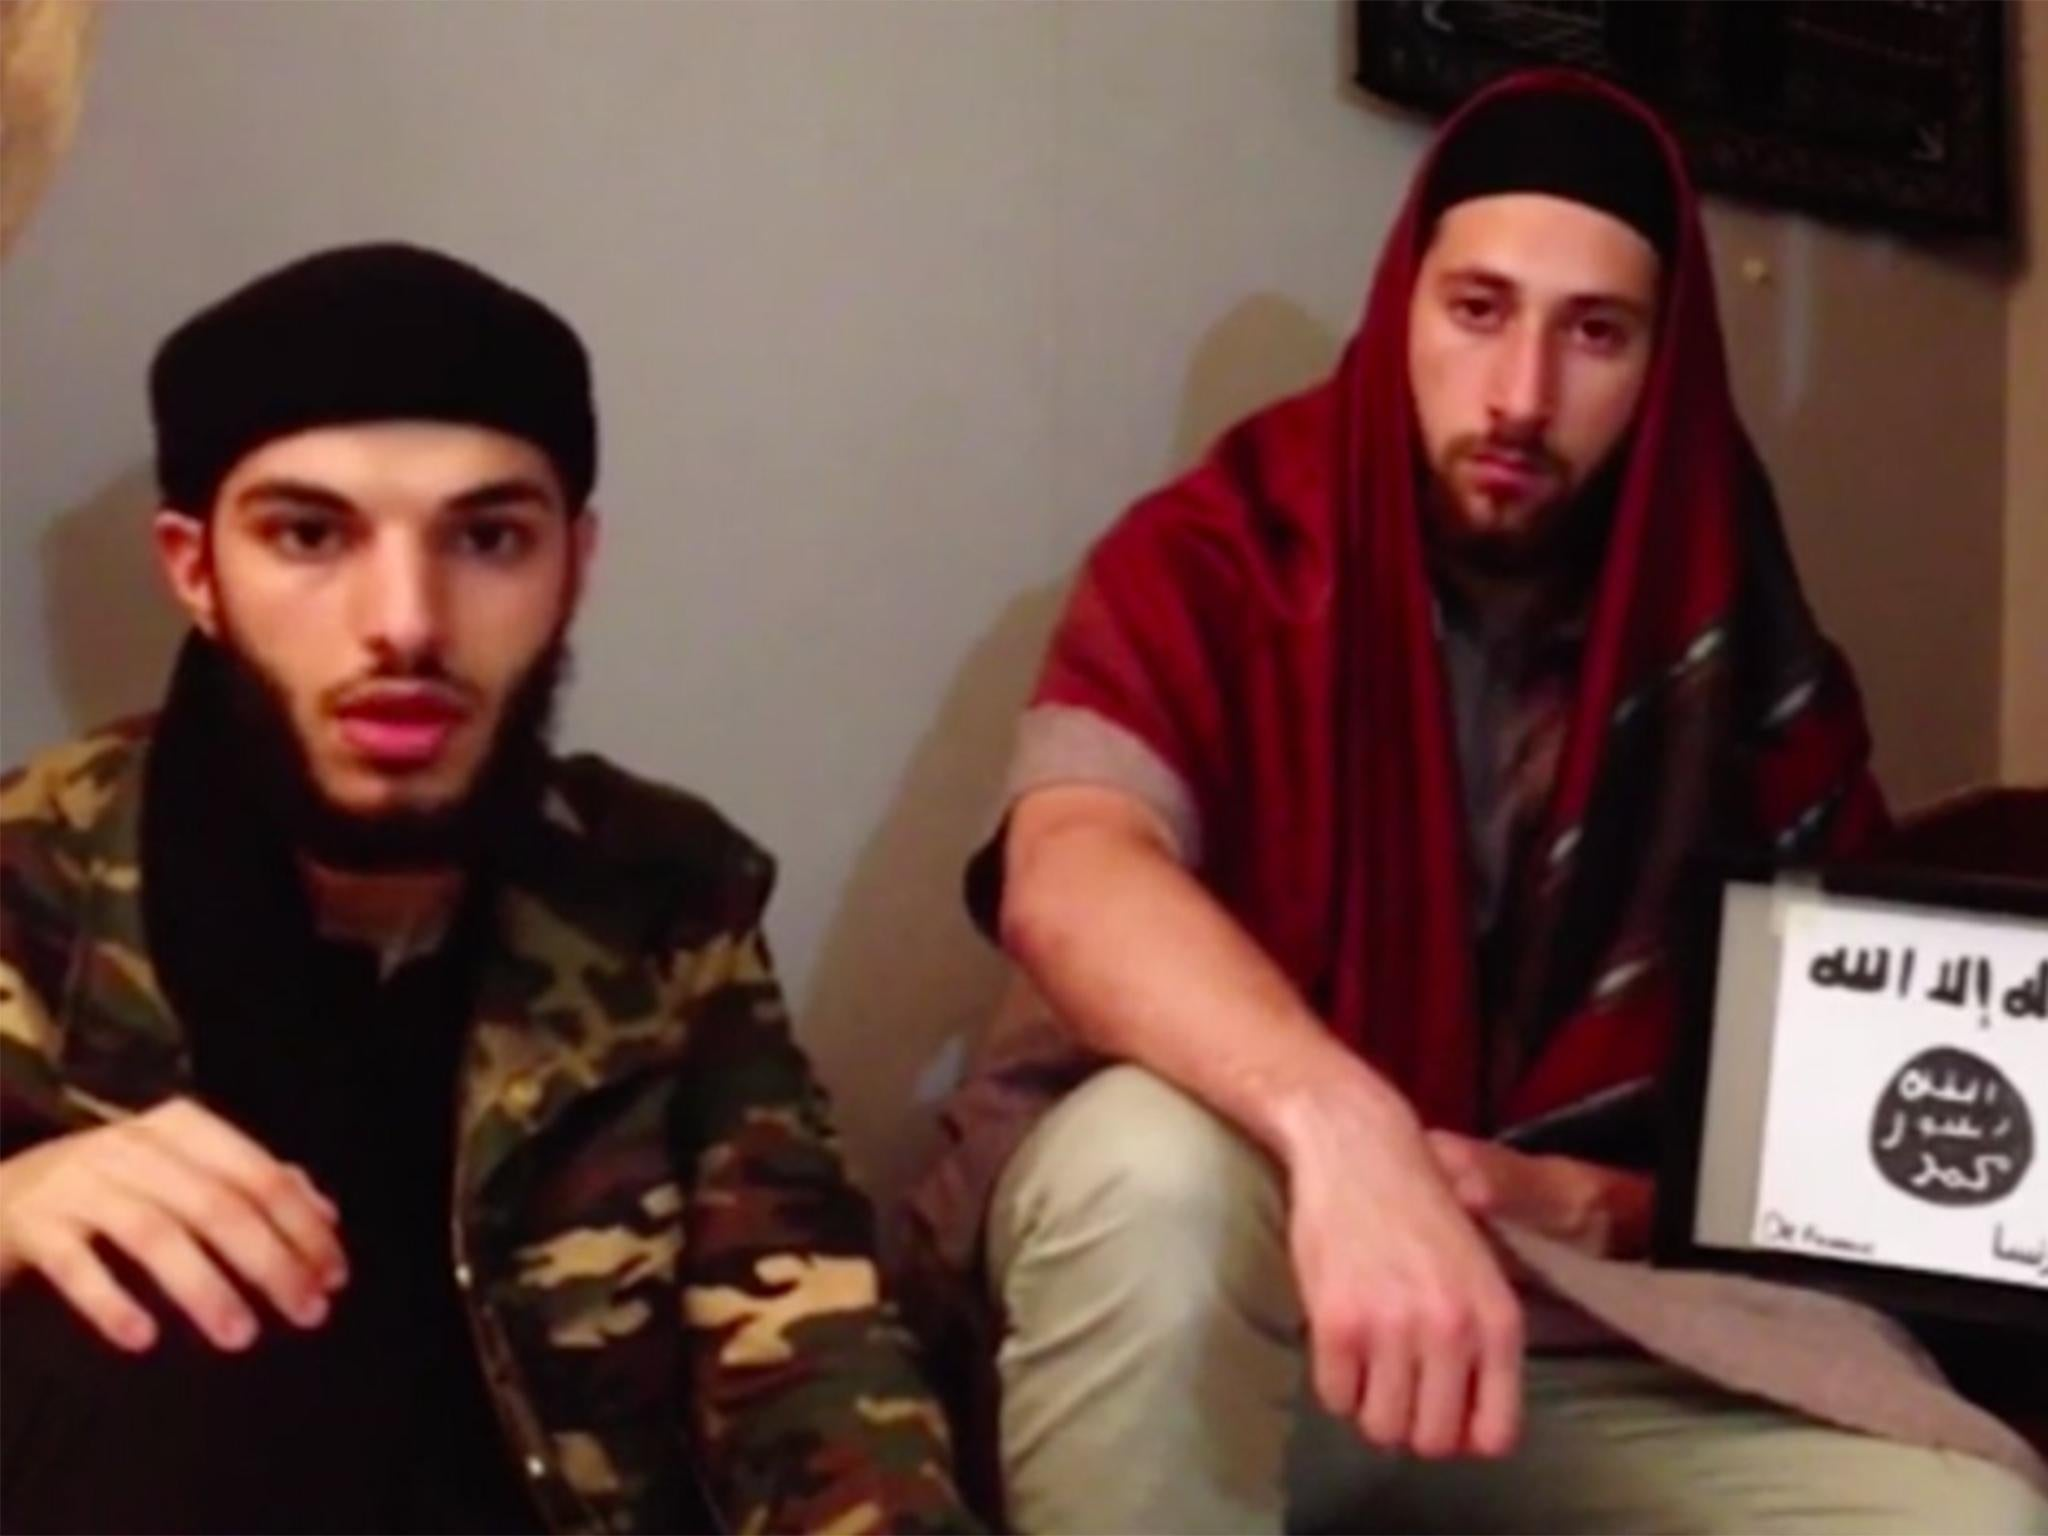 normandy muslim singles Watch video the twisted islamists published the short film featuring adel kermiche and abdel malik petitjean, who stormed into a church in normandy and slit the throat of 86-year-old father jacques hamel in it the sick pair urge muslims across france to arm themselves and take to the streets to carry out copycat killings, vowing that isis.